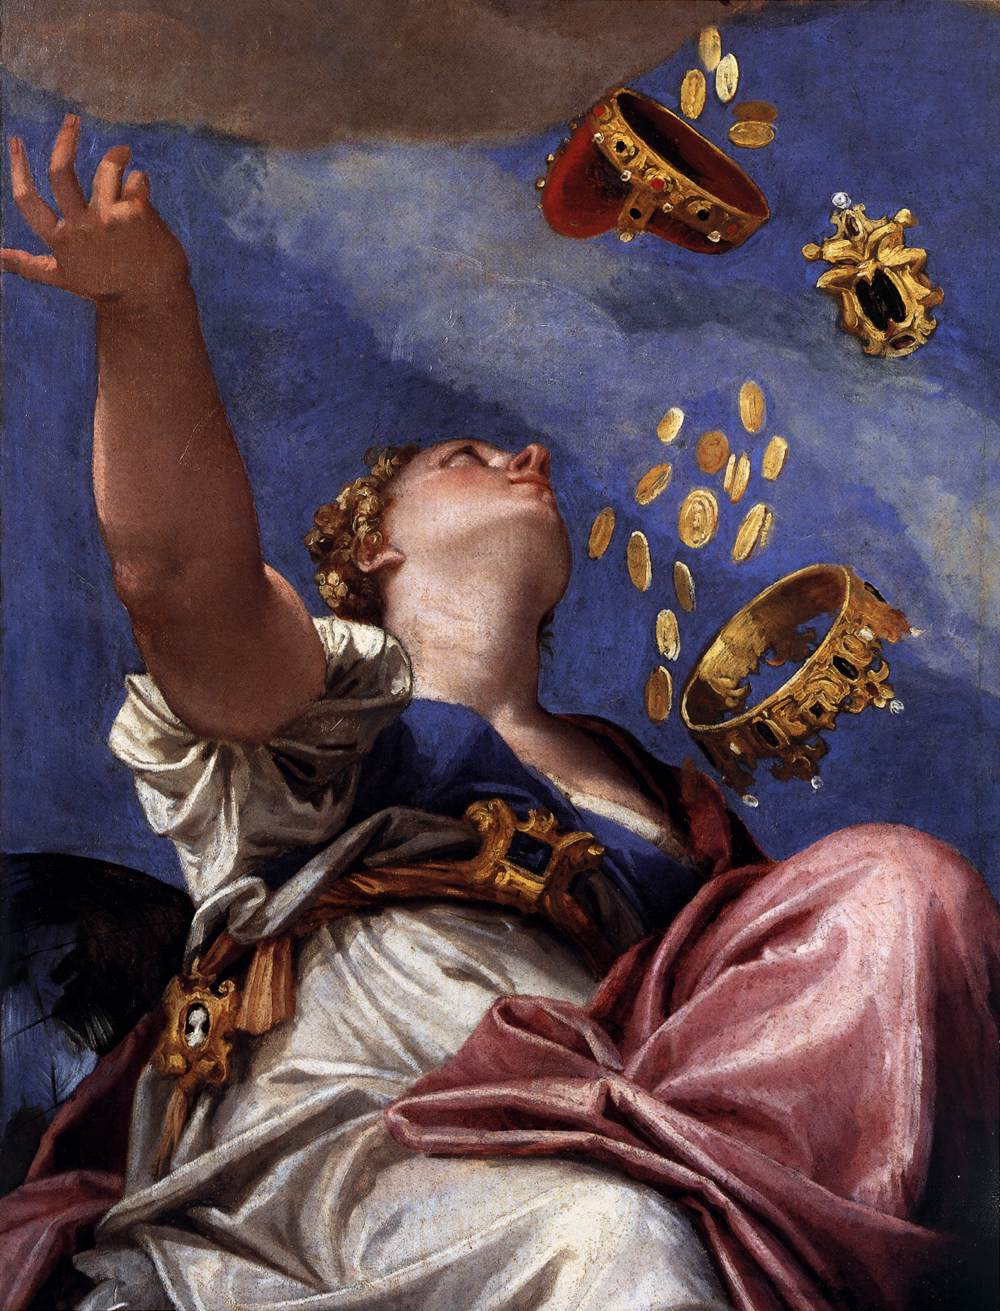 Veronese%2C_Paolo_-_Juno_Showering_Gifts_on_Venetia_%28detail%29_-_1554-56